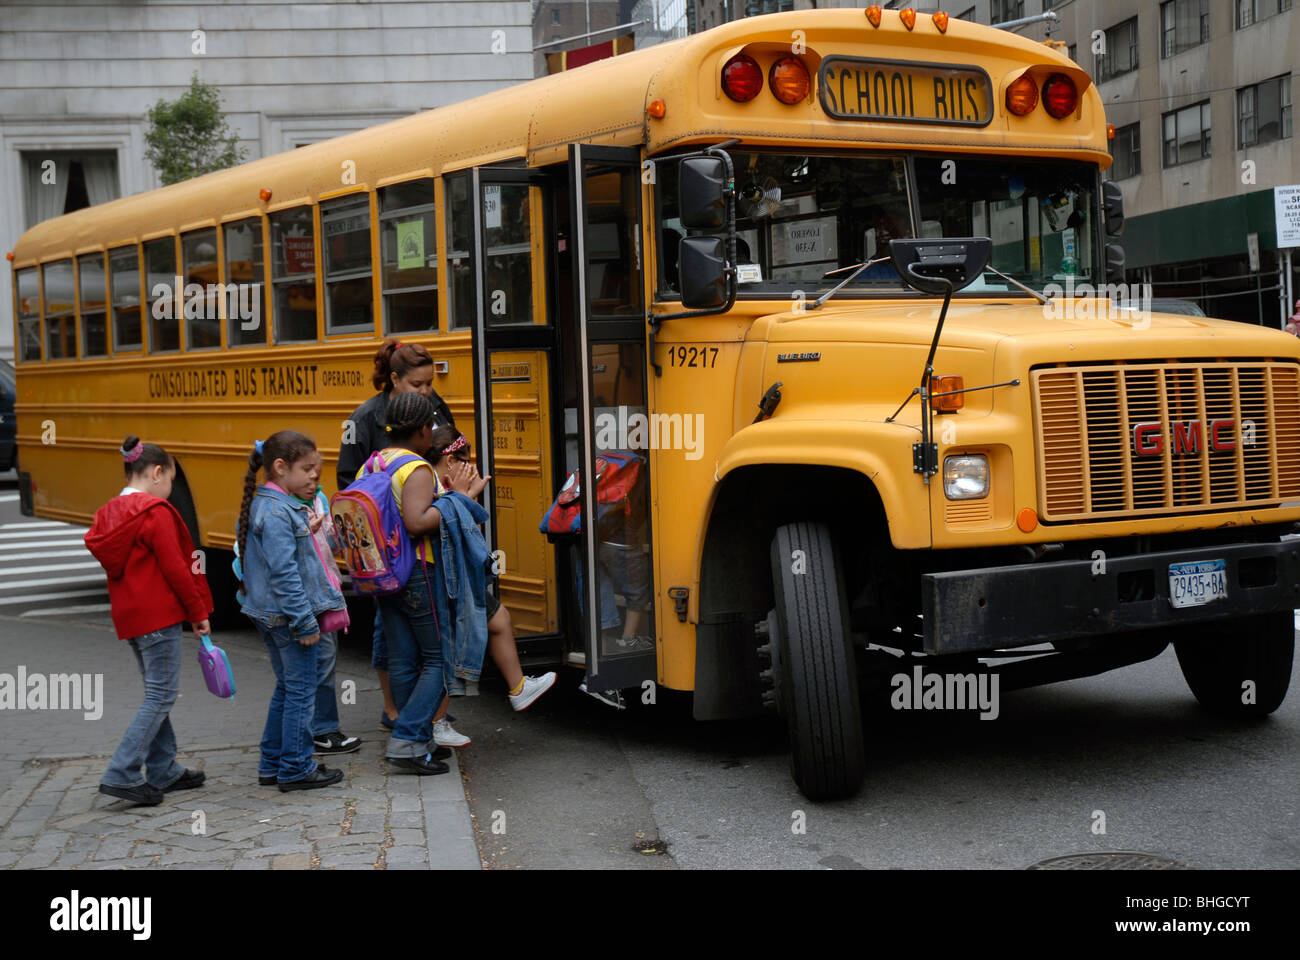 New York City School children getting onto for bus to take them home - Stock Image